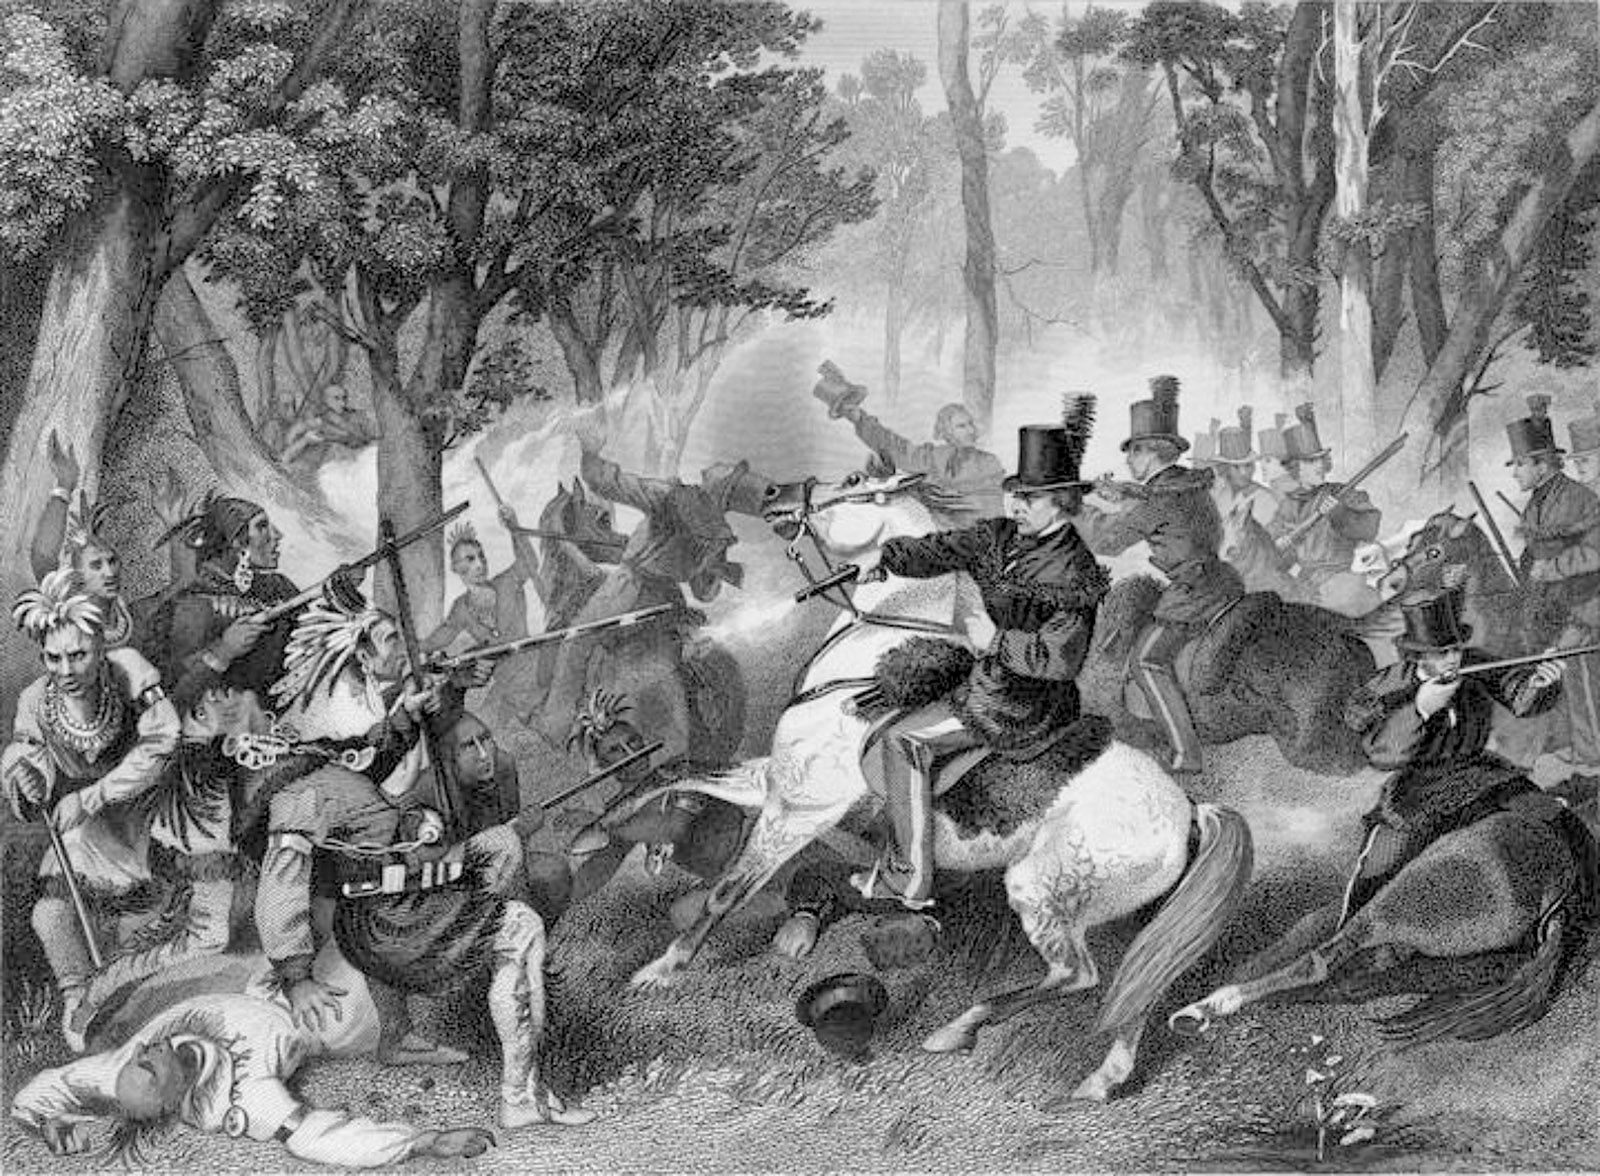 'Battle of the Thames—Death of Tecumseh'; engraving by William Wellstood after a painting by Alonzo Chappel, 1882